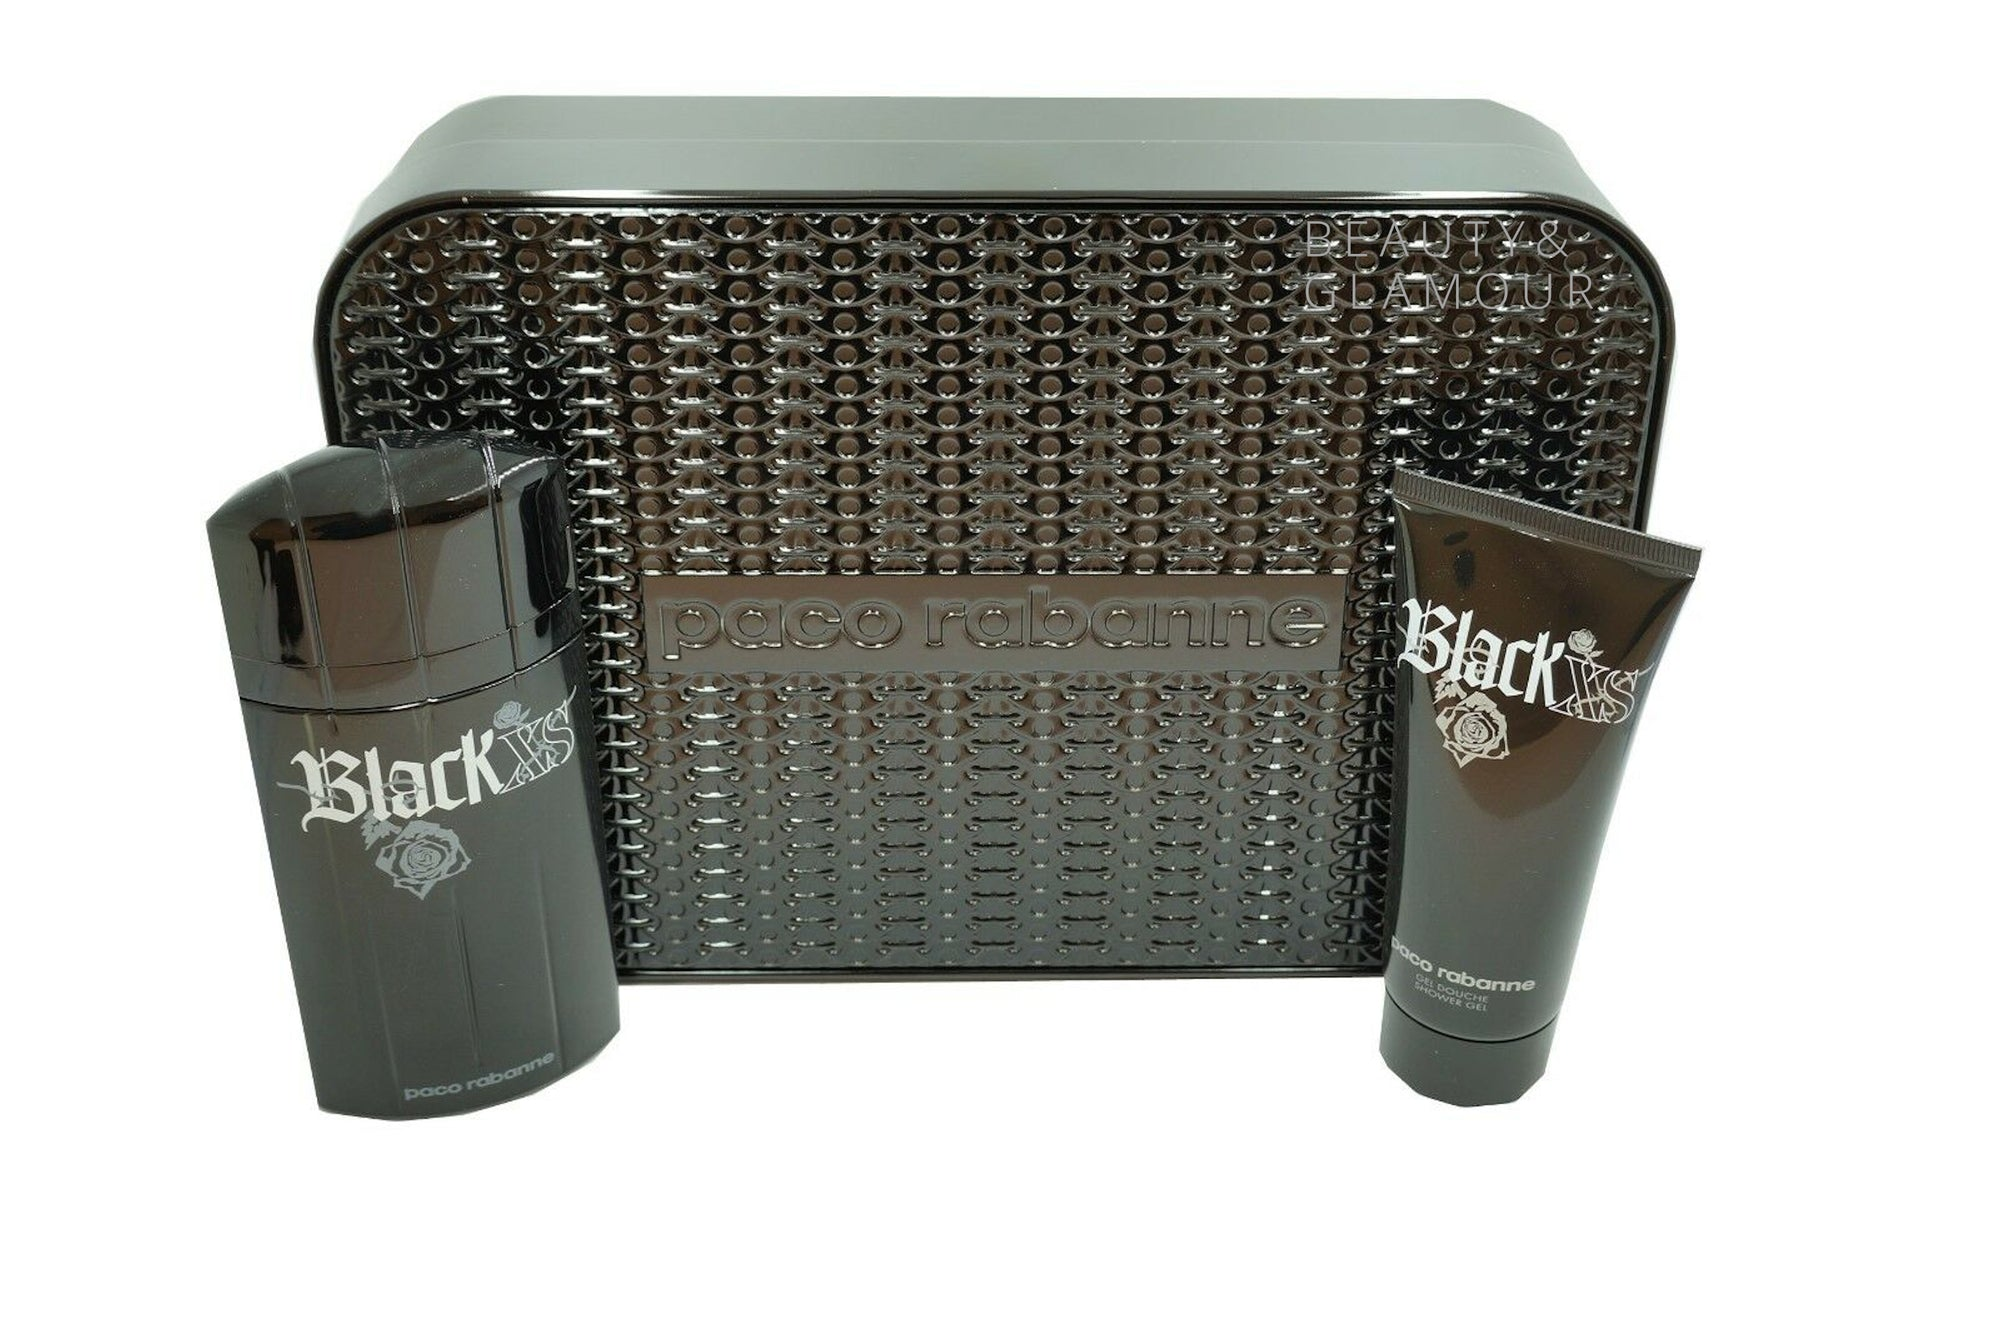 PACO RABANNE BLACK XS 2 PIECE GIFT SET EAU DE TOILETTE SPRAY 100ML